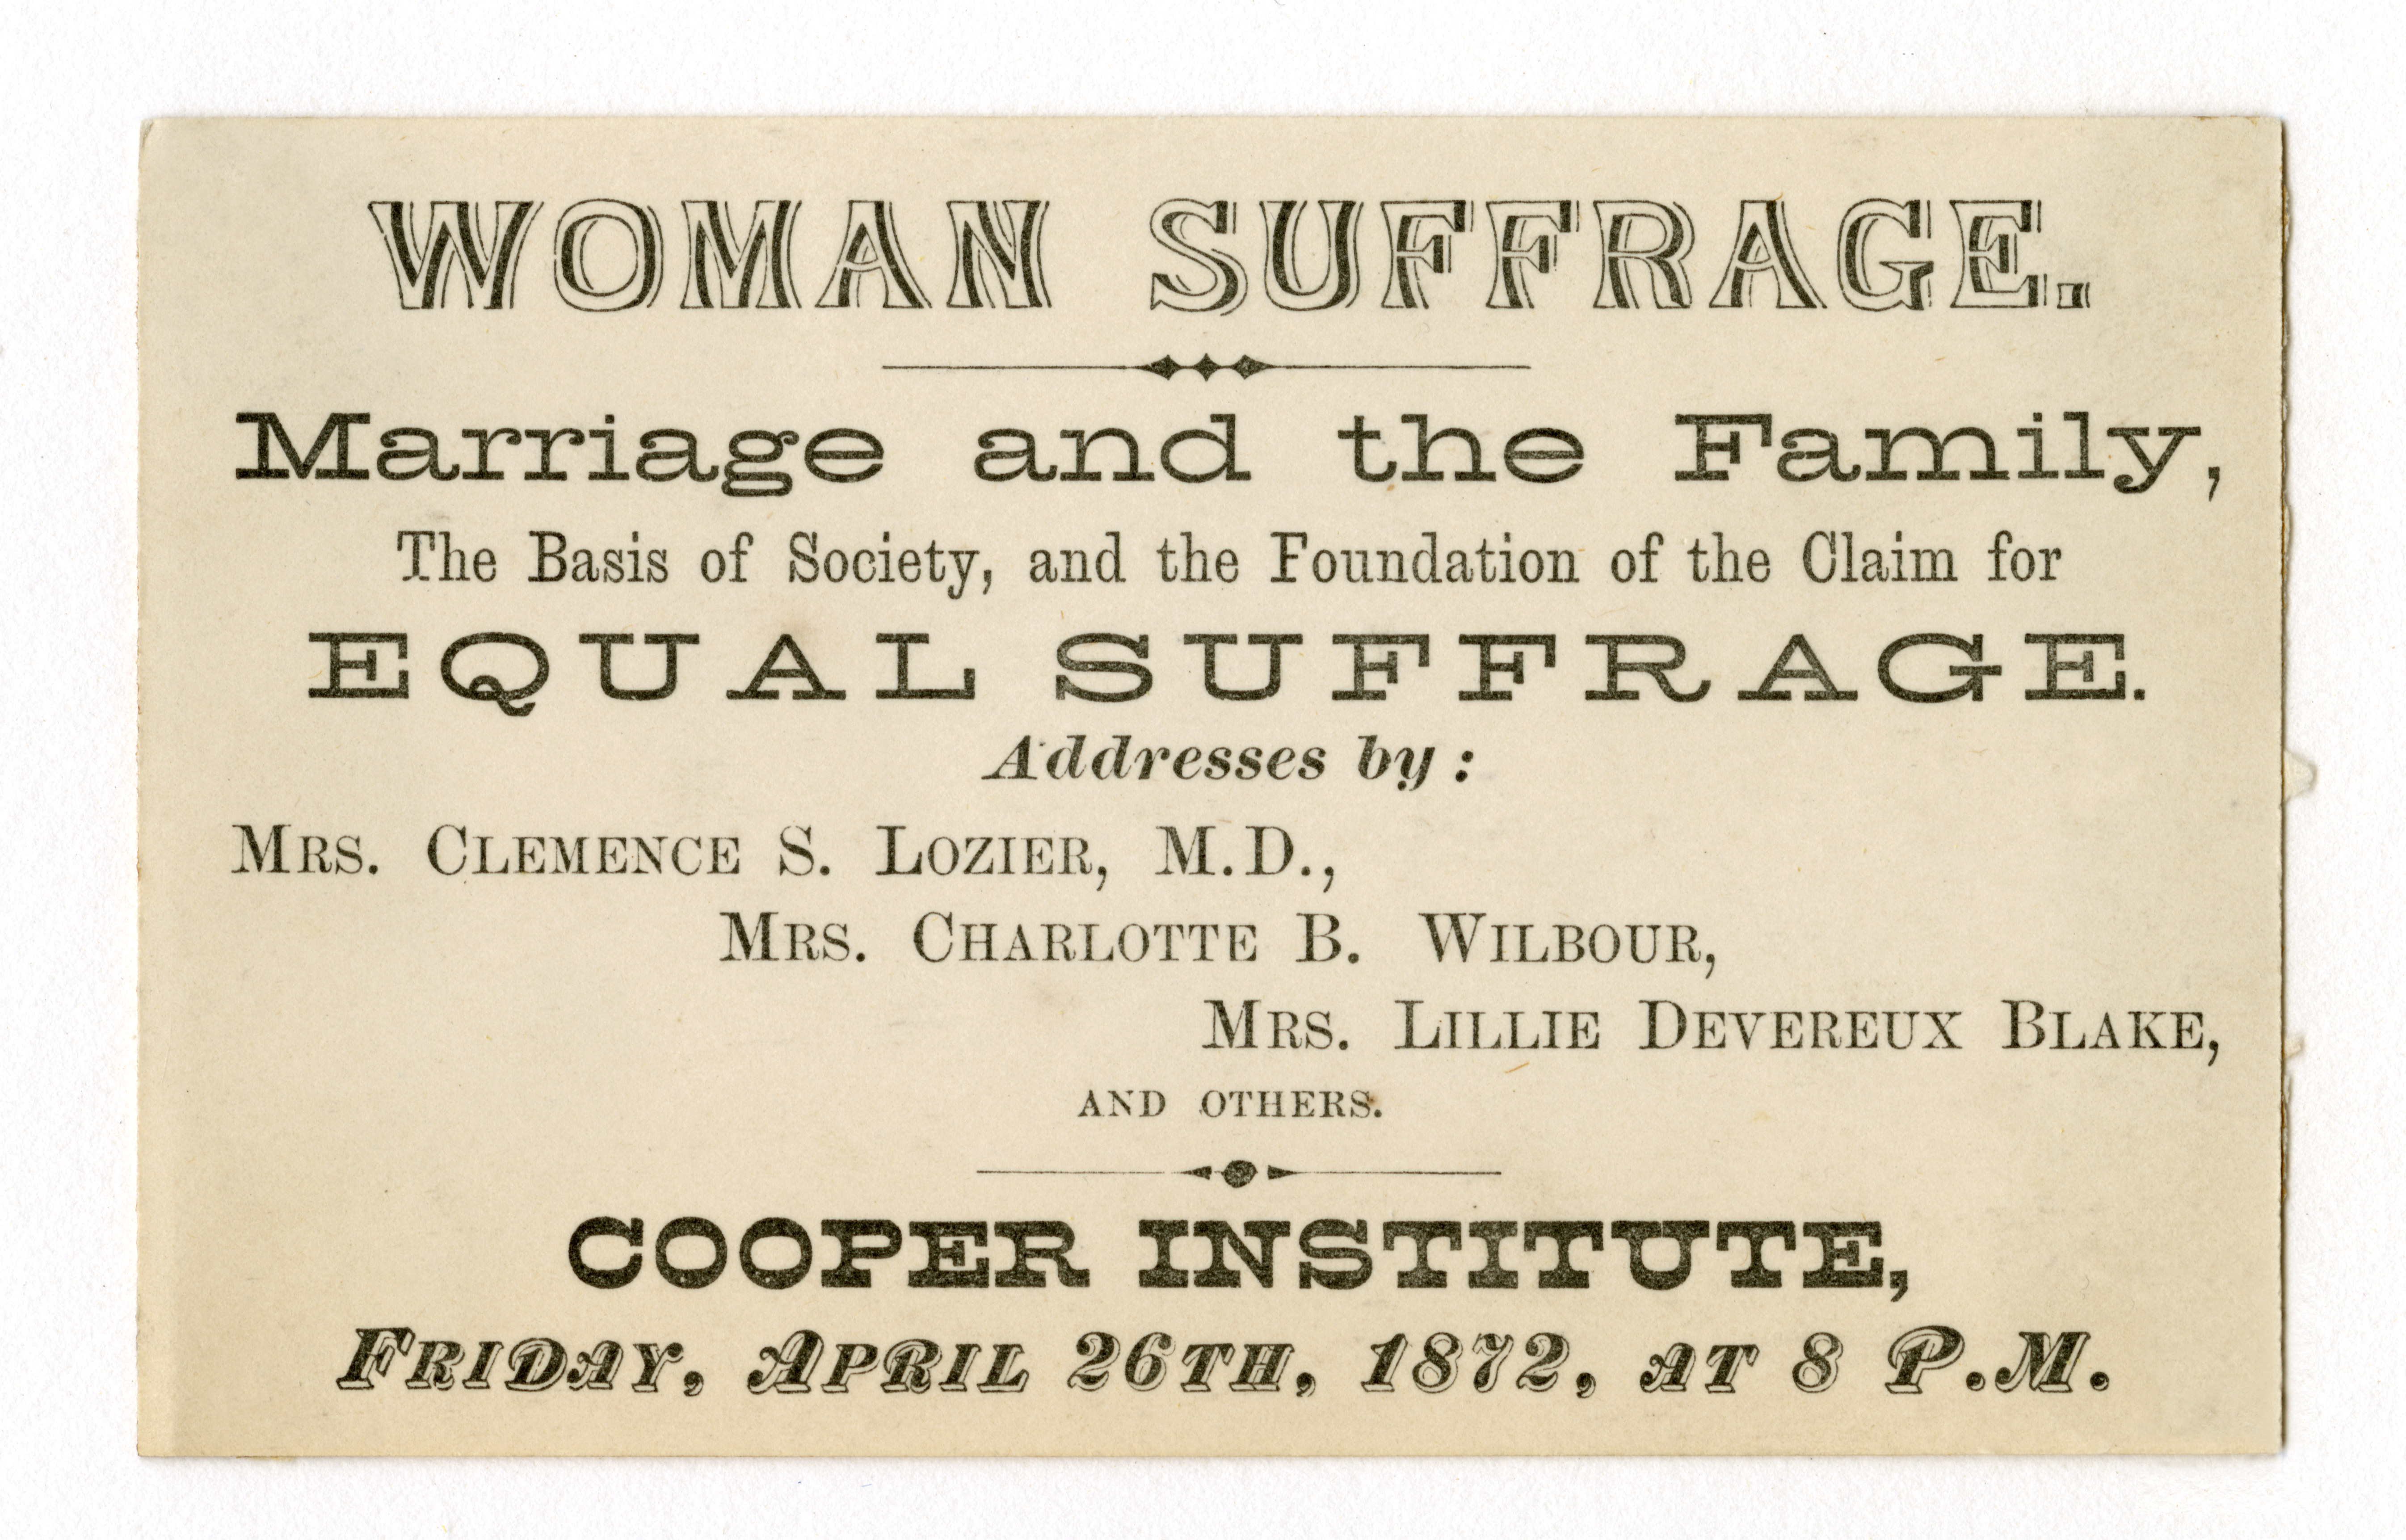 Ticket to Women Suffrage meeting in the Great Hall